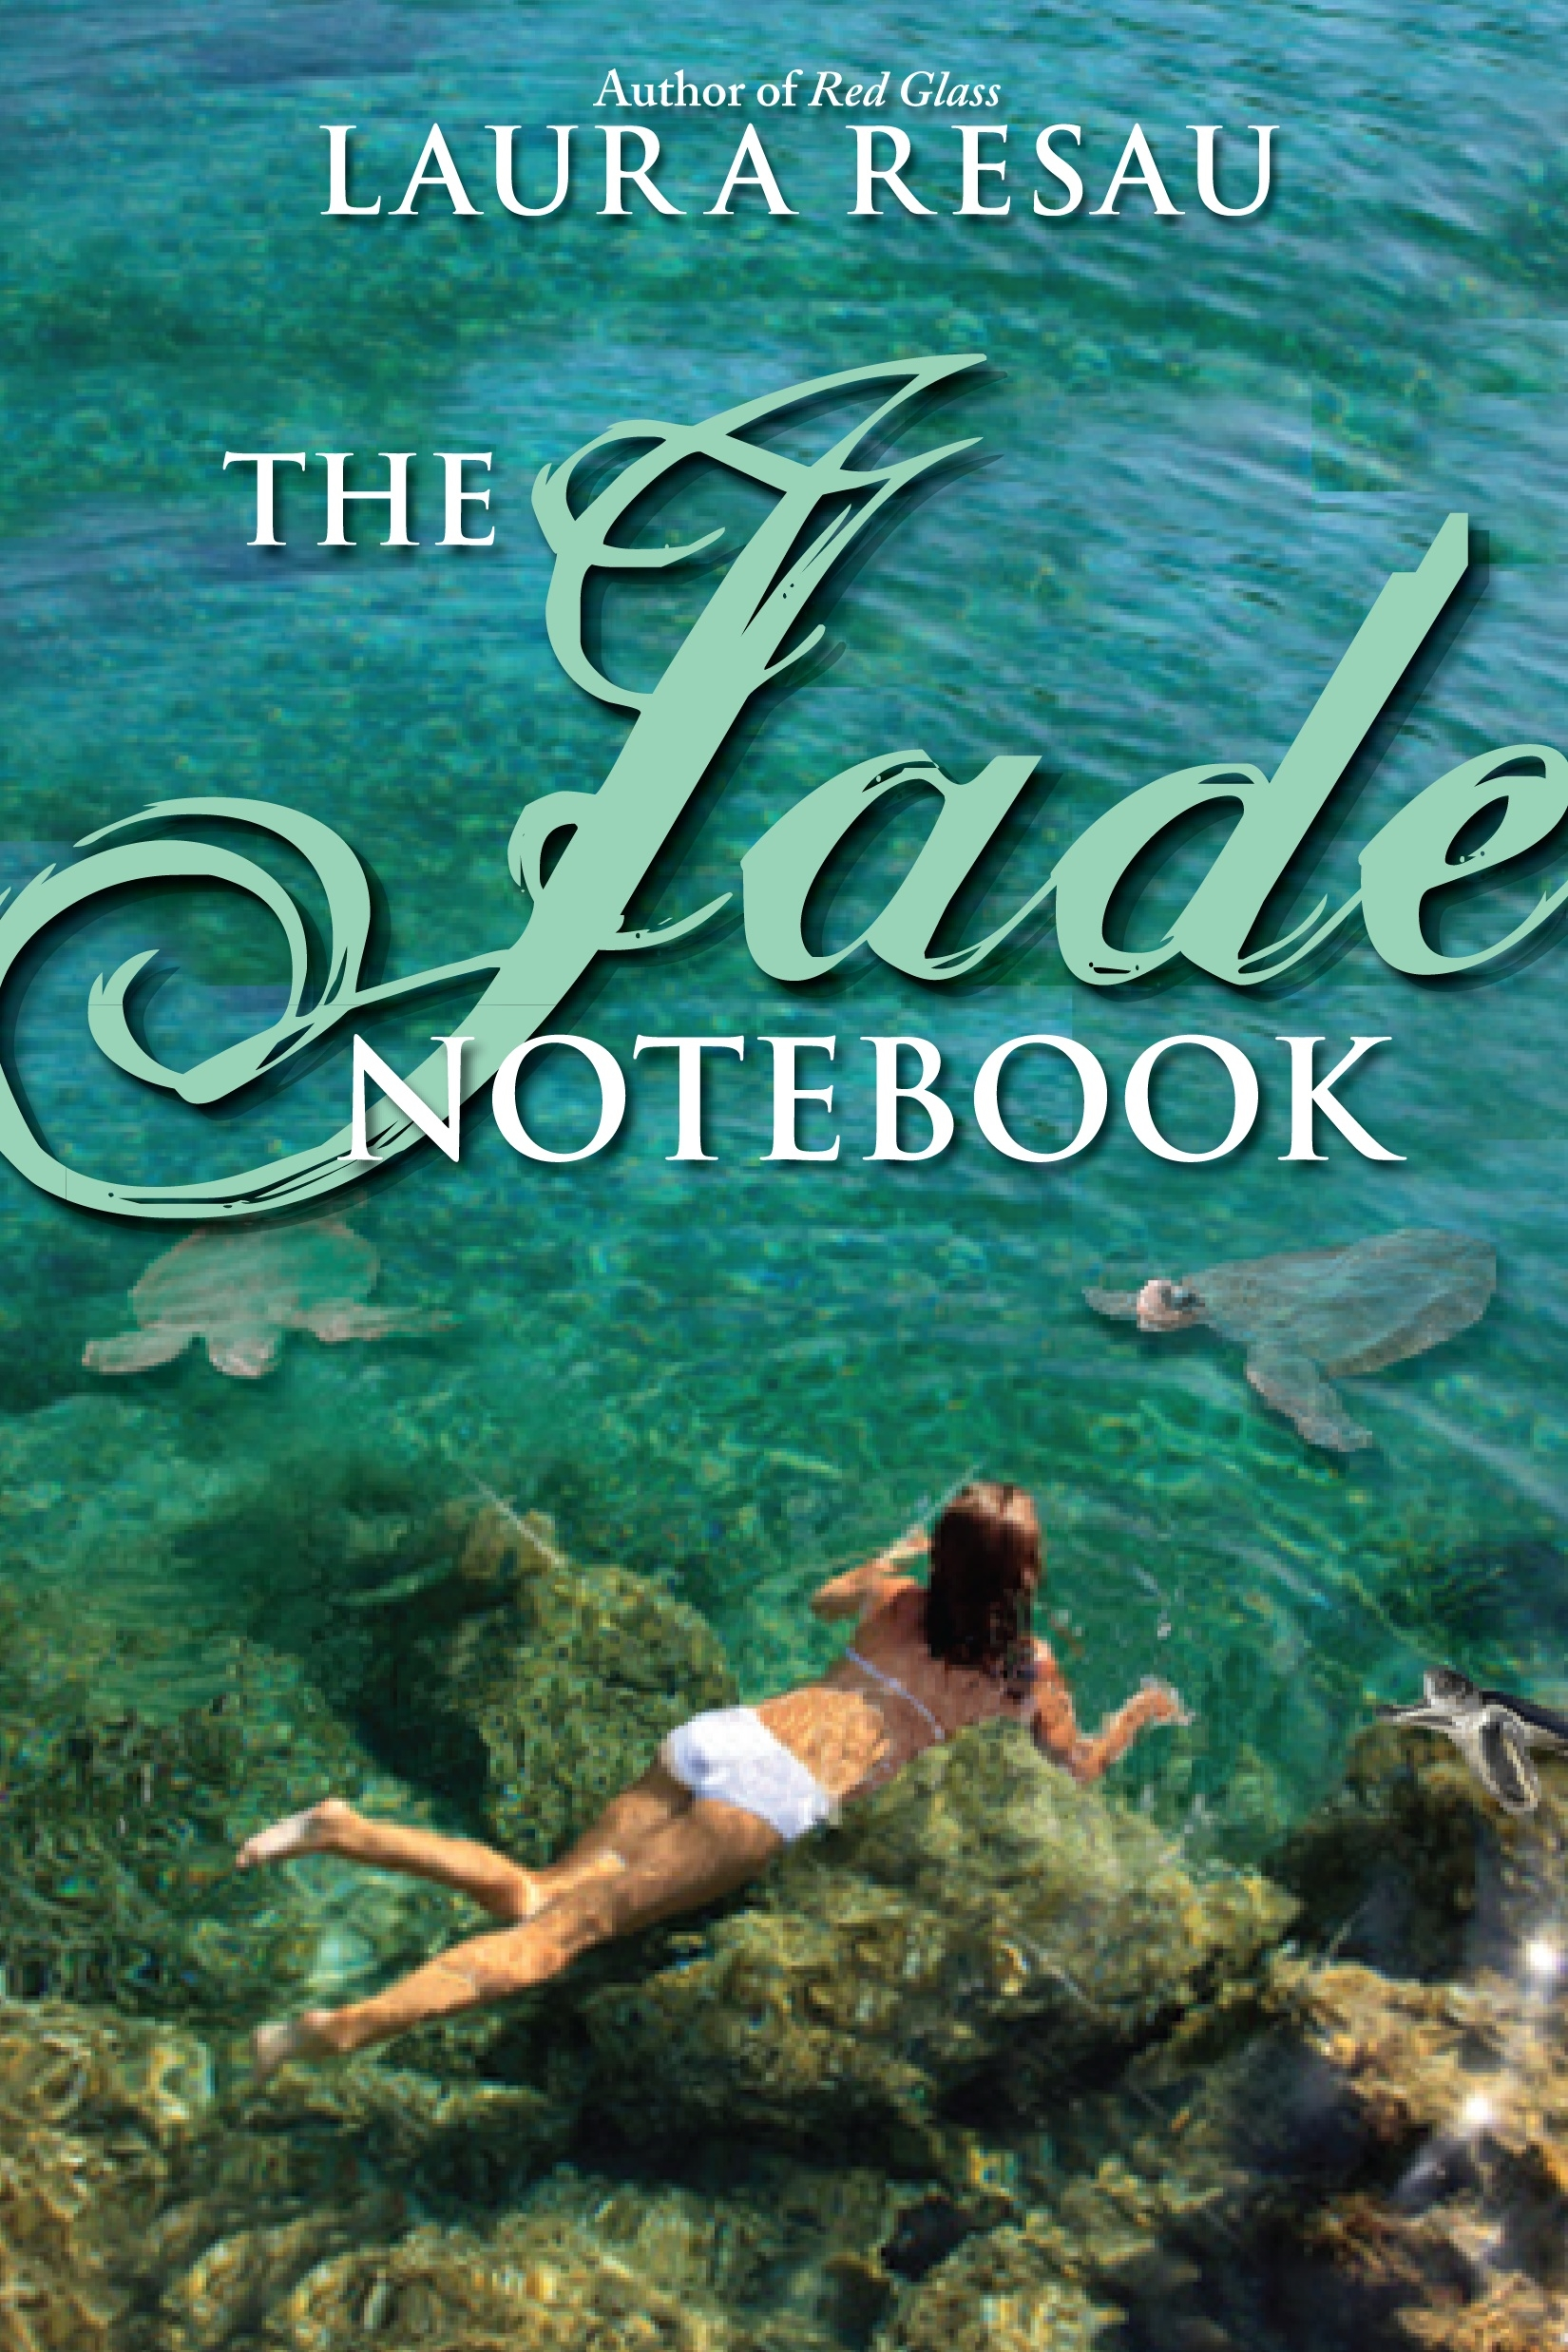 The-Jade-Notebook-cover-high-res